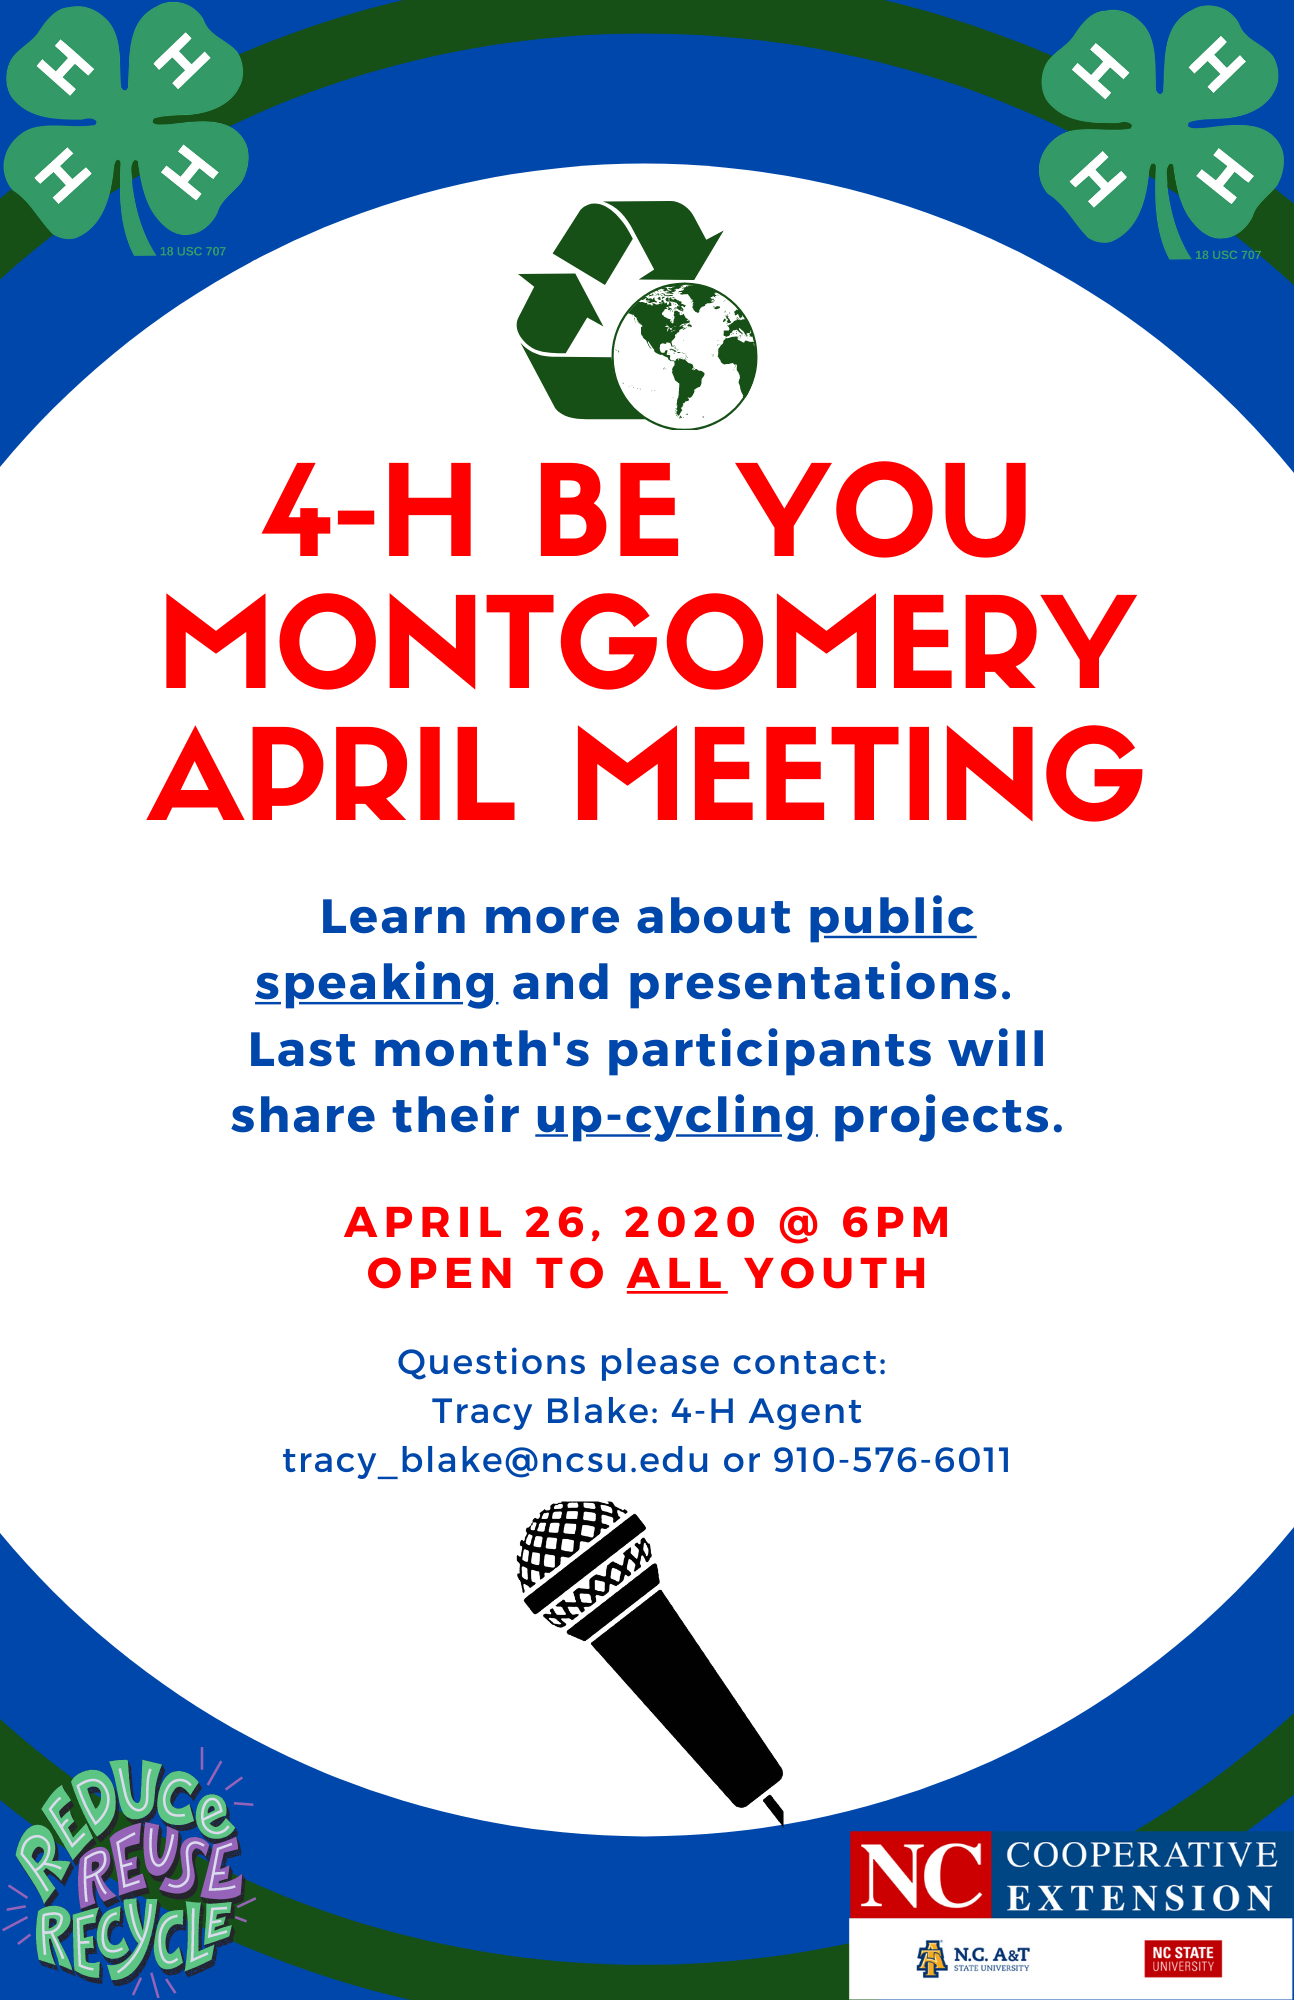 4-H Be You meeting flyer